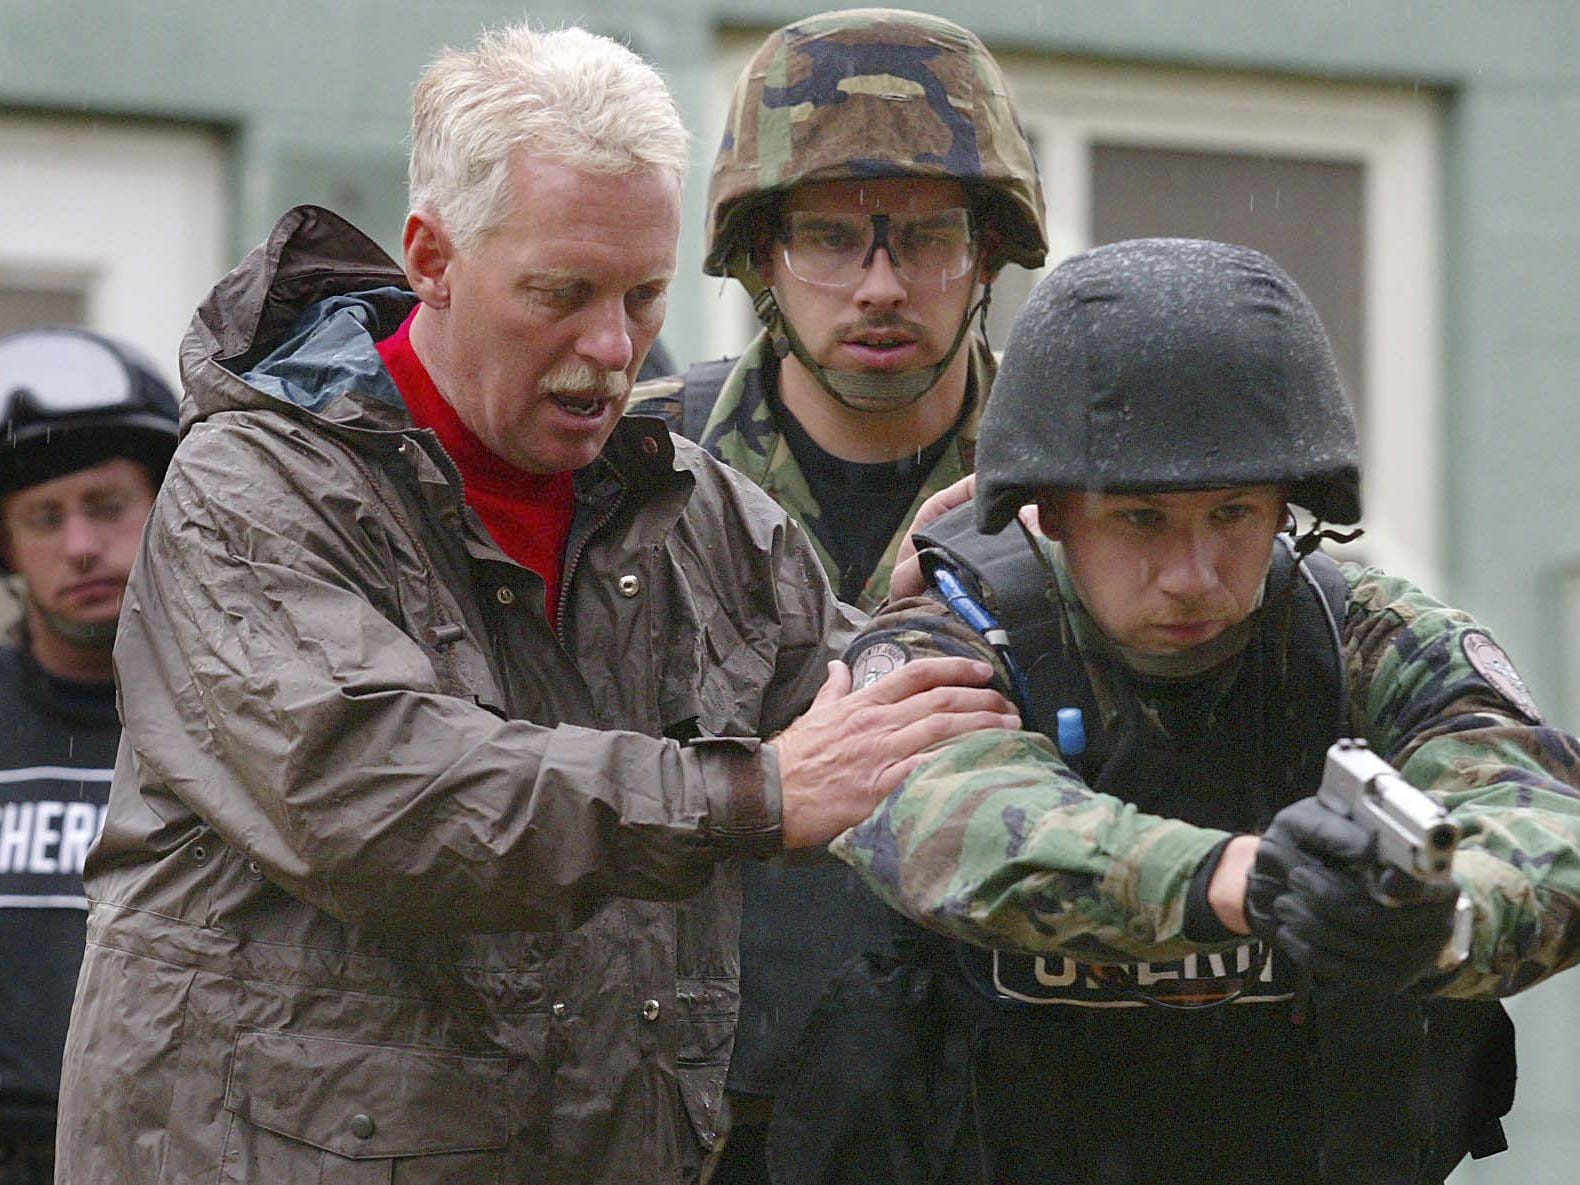 FROM 2004: Sheriff George Sheridan instructs a Grant County police officer on tactical maneuvers during a SWAT school hosted by the Delaware County Sheriff's Department.